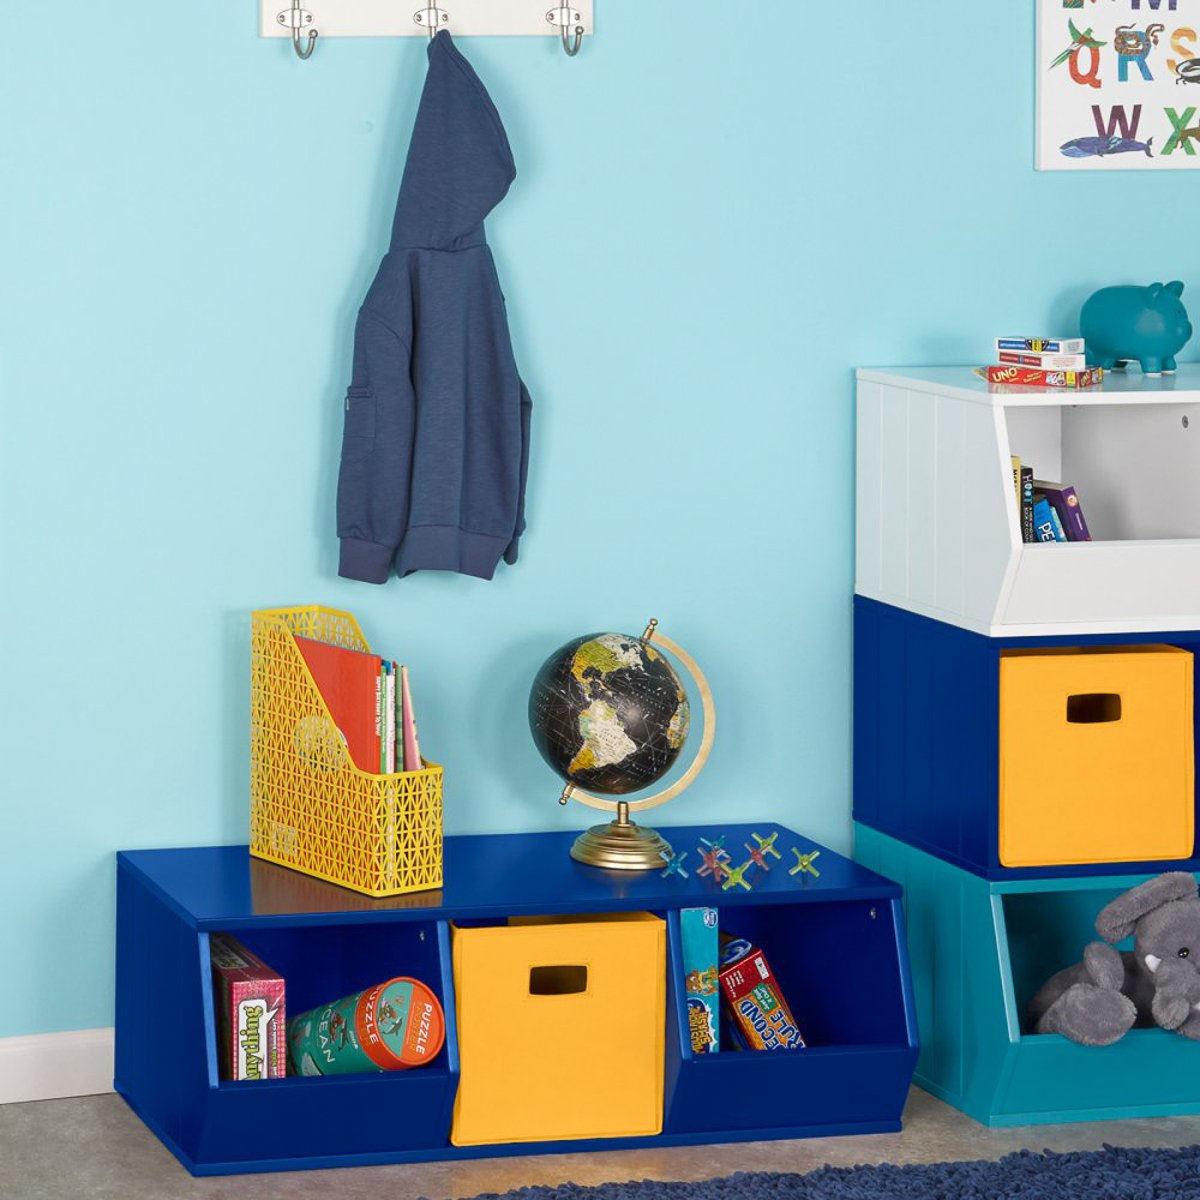 RiverRidge Kids Storage Stacker-2 Veggie Bins-1 Cubby, Navy by RiverRidge Kids (Image #2)